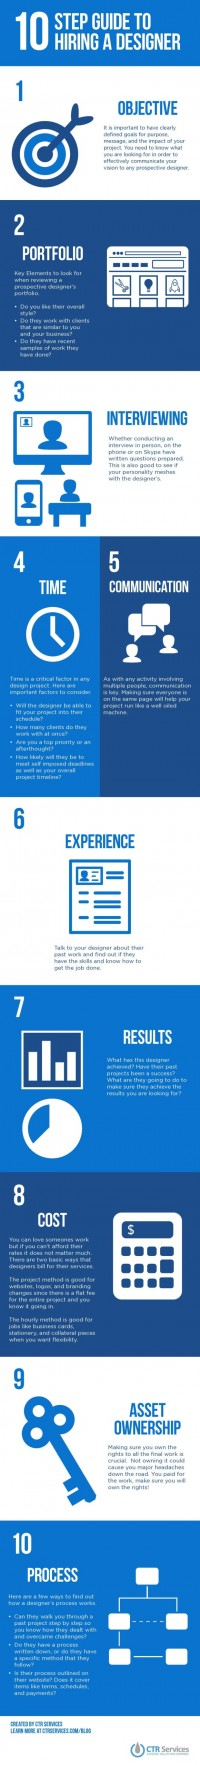 Infographic - 10 Step Guide to Hiring a Designer